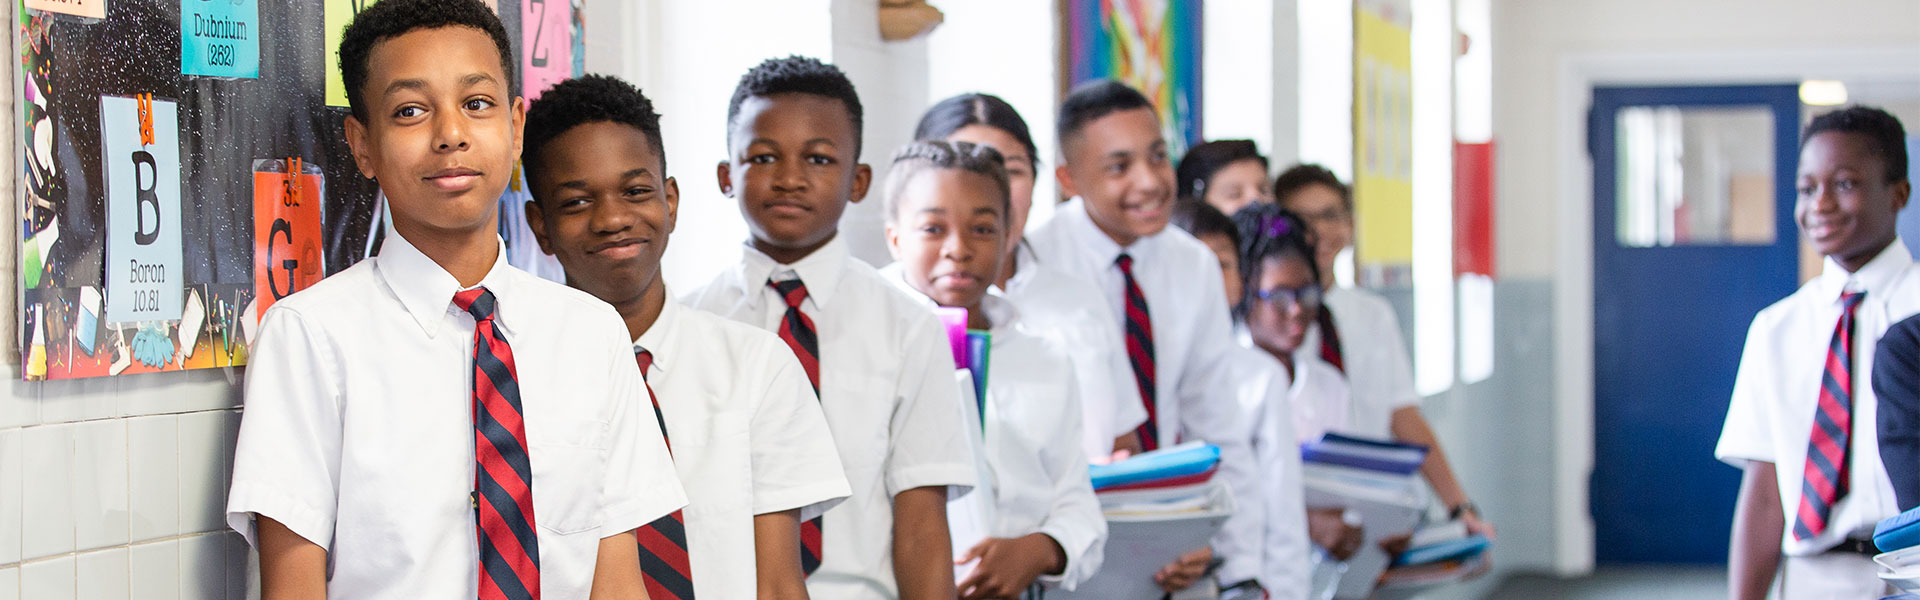 middle school students in uniforms at annunciation catholic school in dc